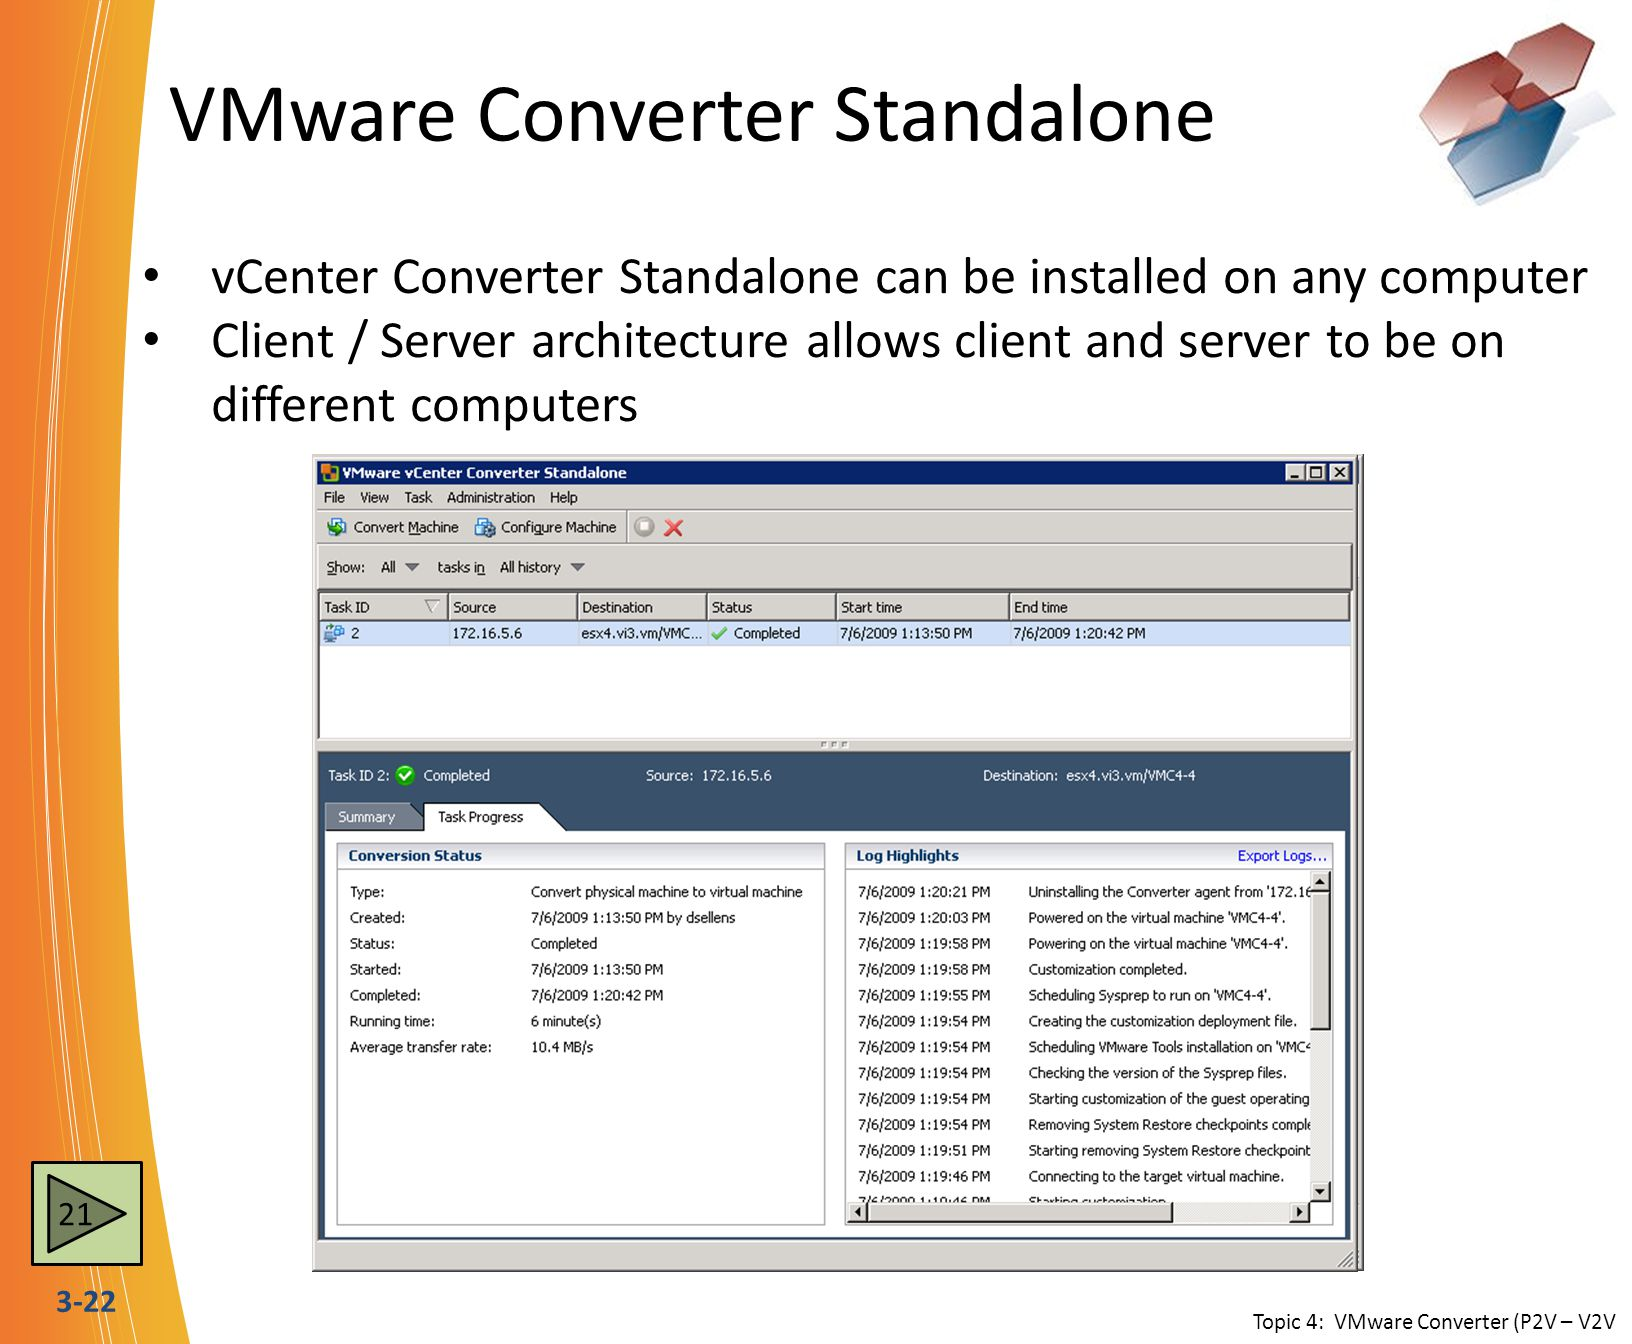 3-22 VMware Converter Standalone vCenter Converter Standalone can be installed on any computer Client / Server architecture allows client and server to be on different computers Topic 4: VMware Converter (P2V – V2V 21